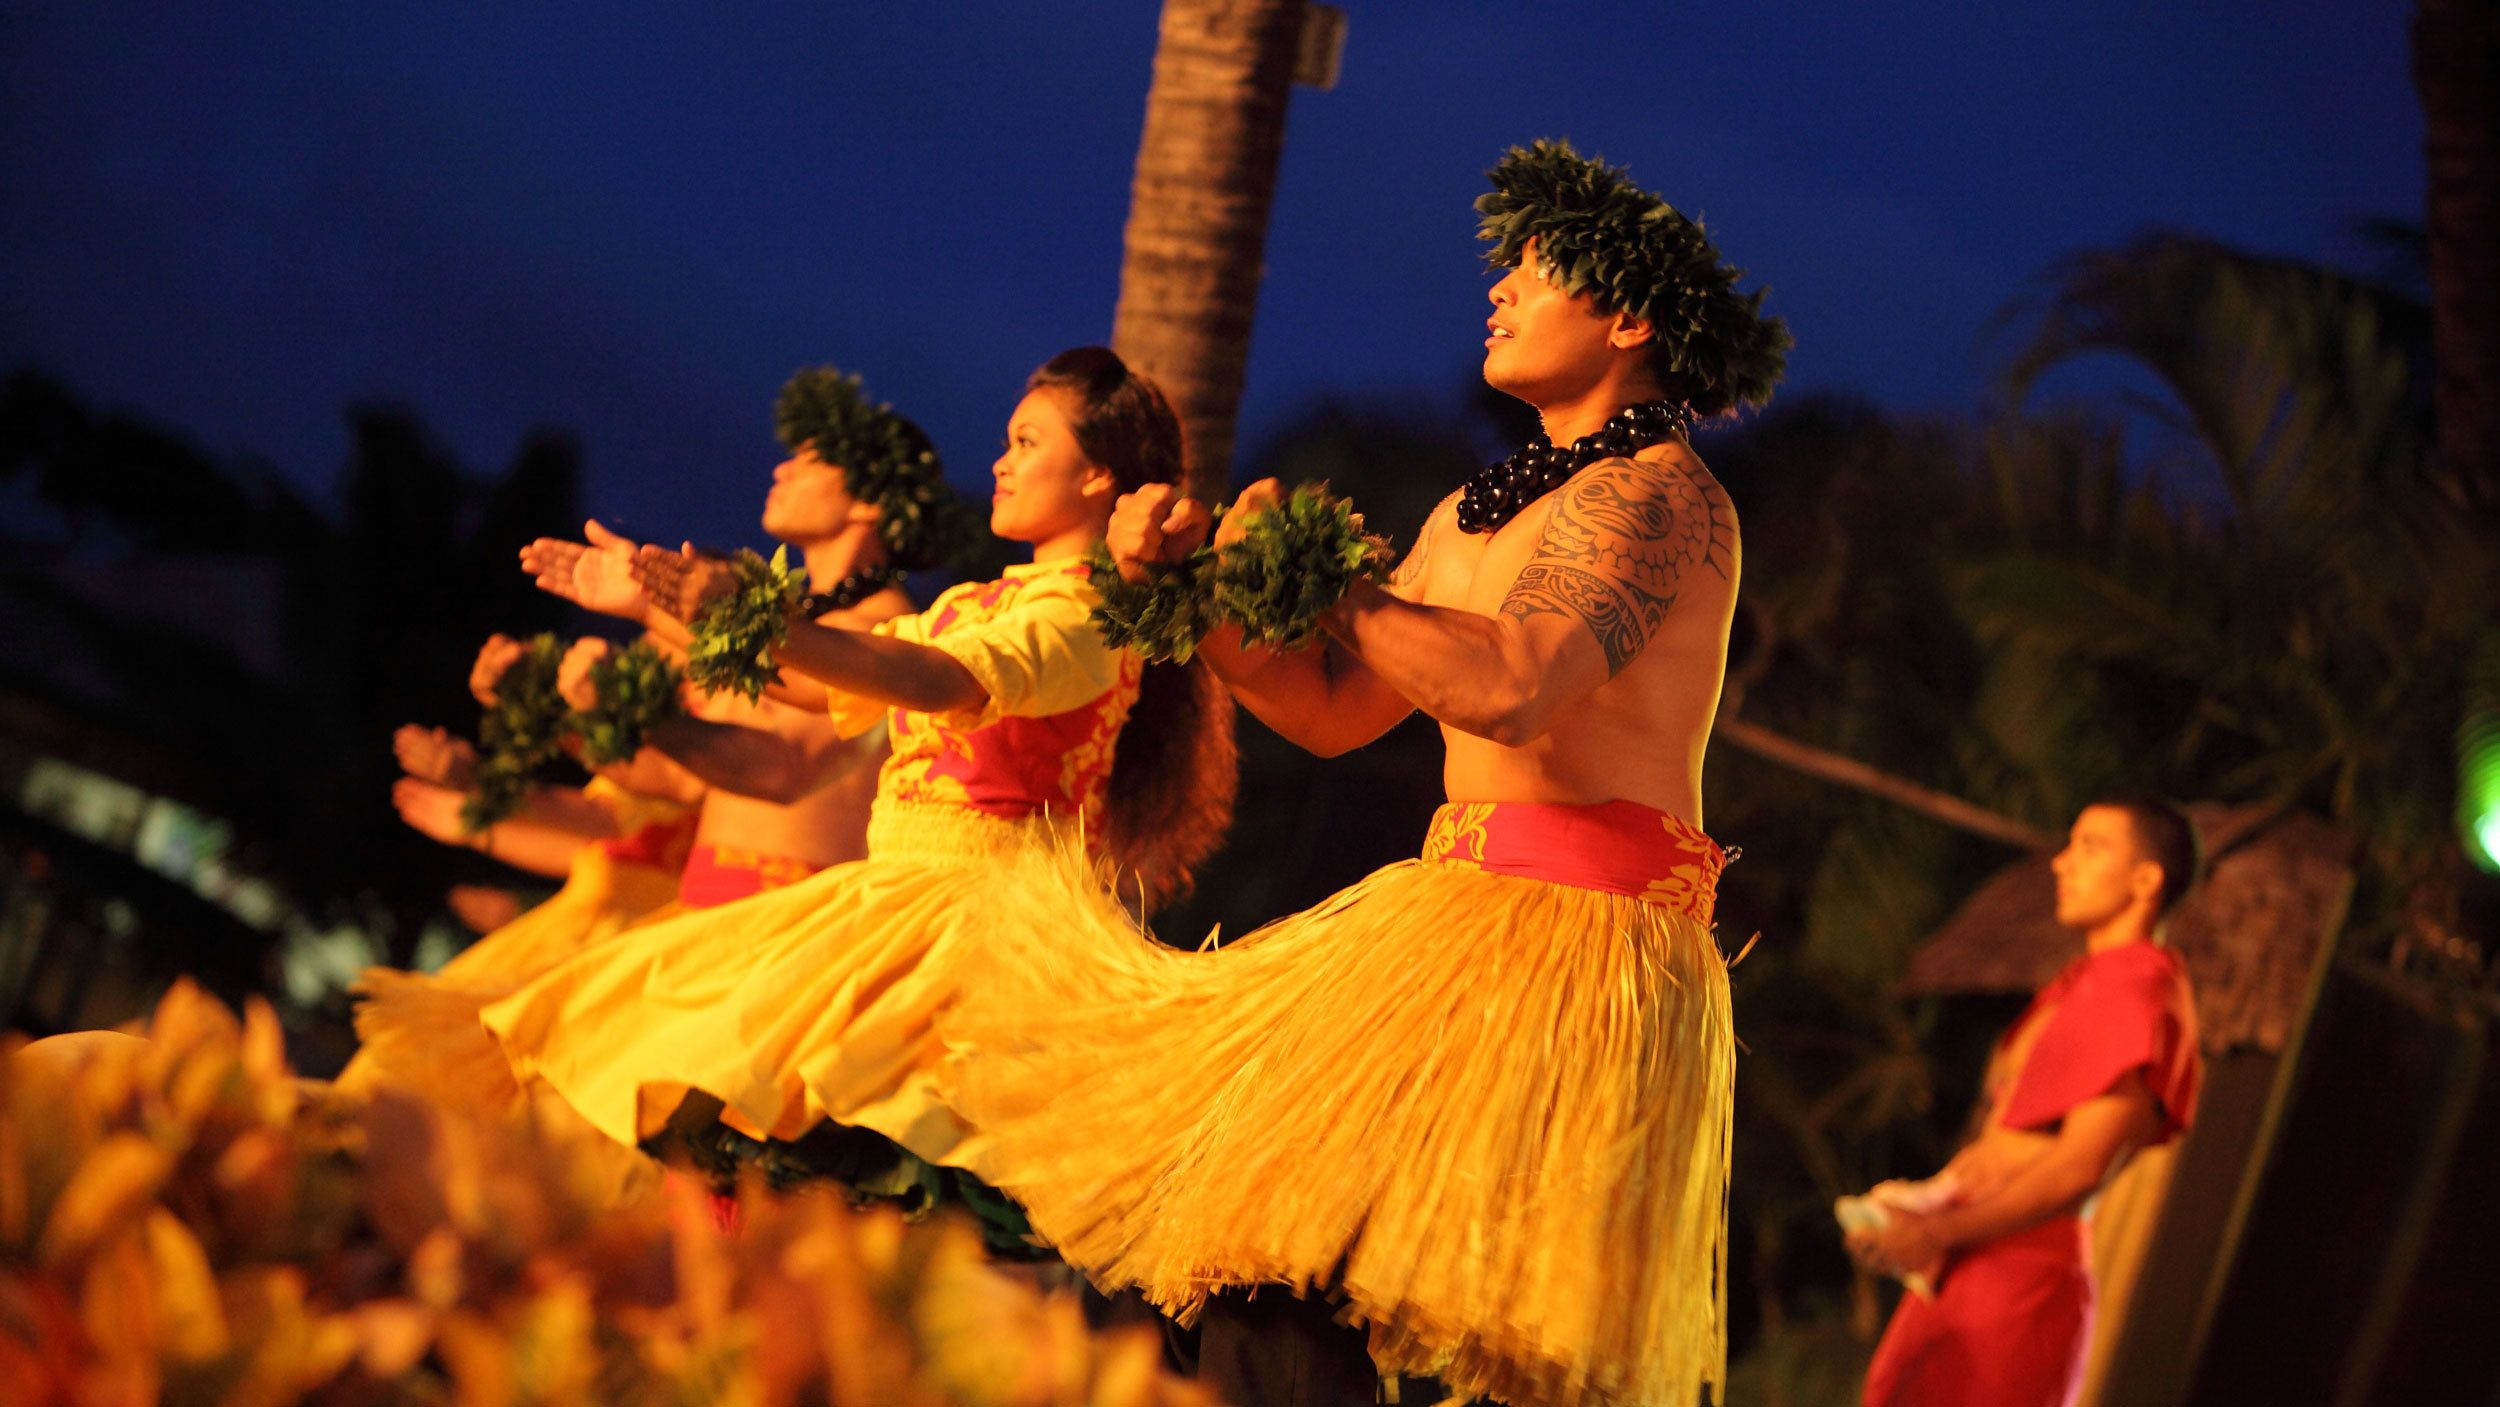 Luau performers in grass skirts